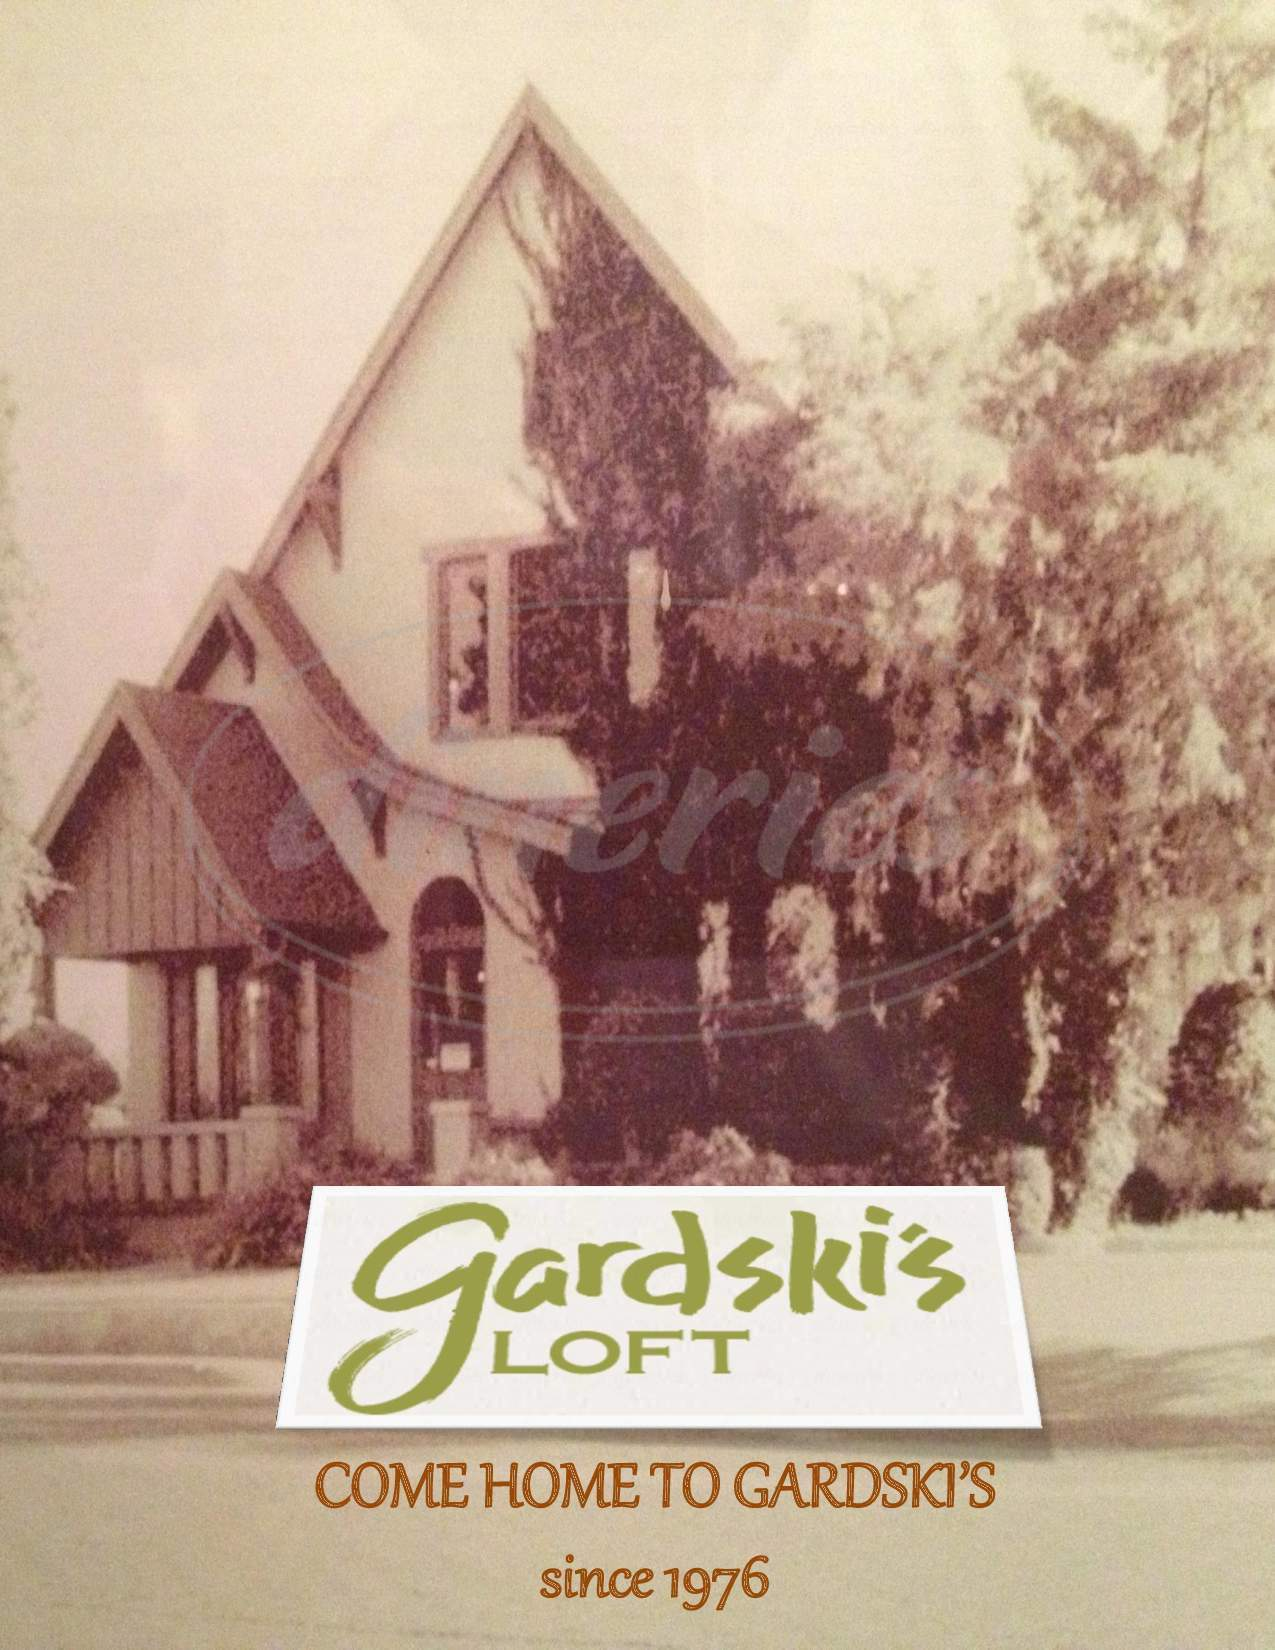 menu for Gardski's Loft